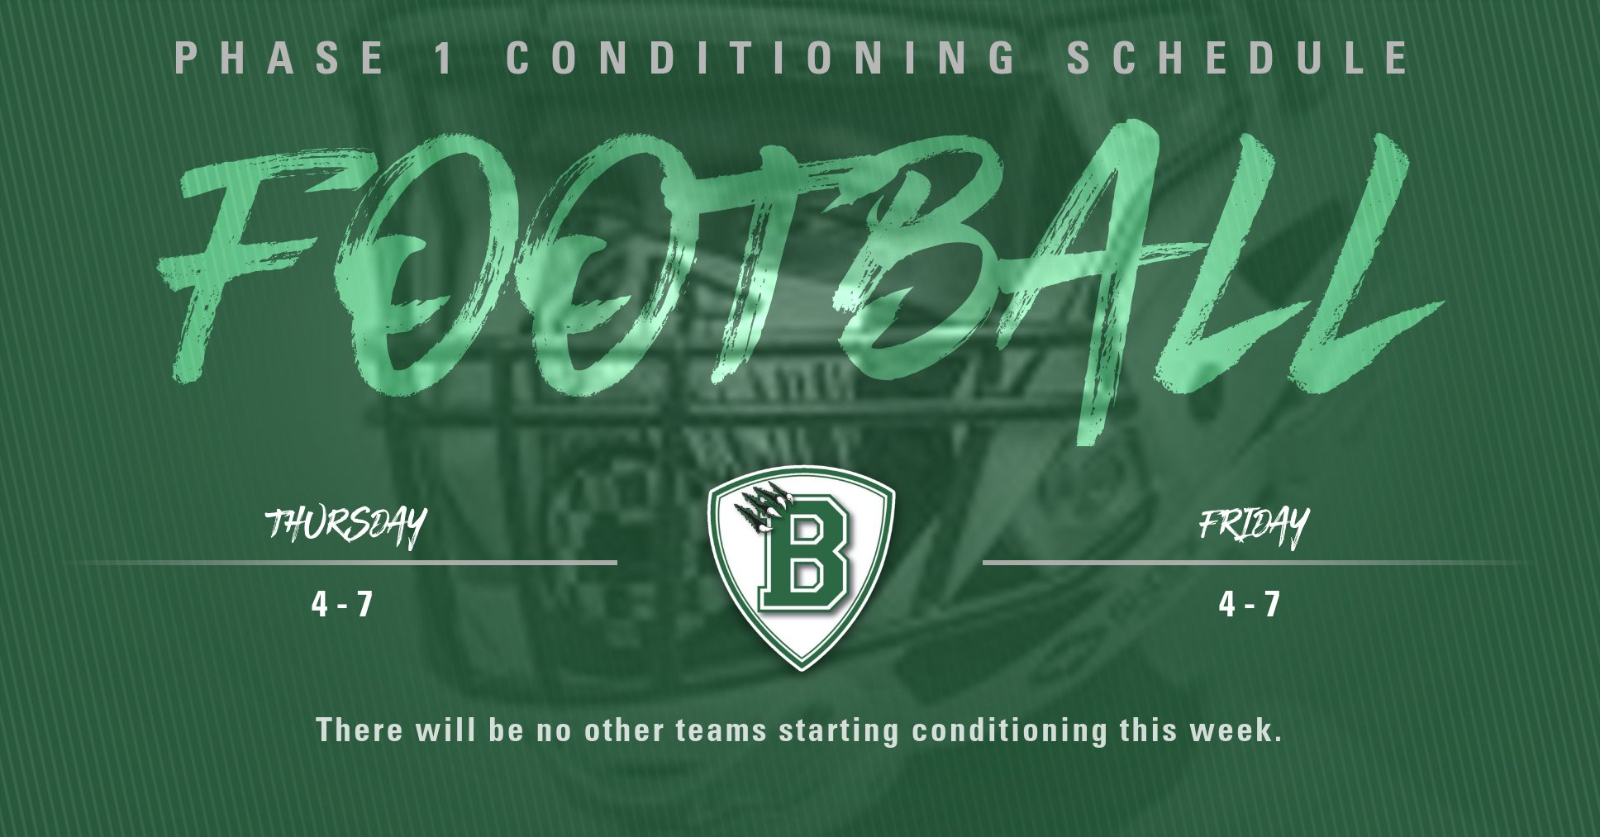 Phase 1 Conditioning Opens This Week